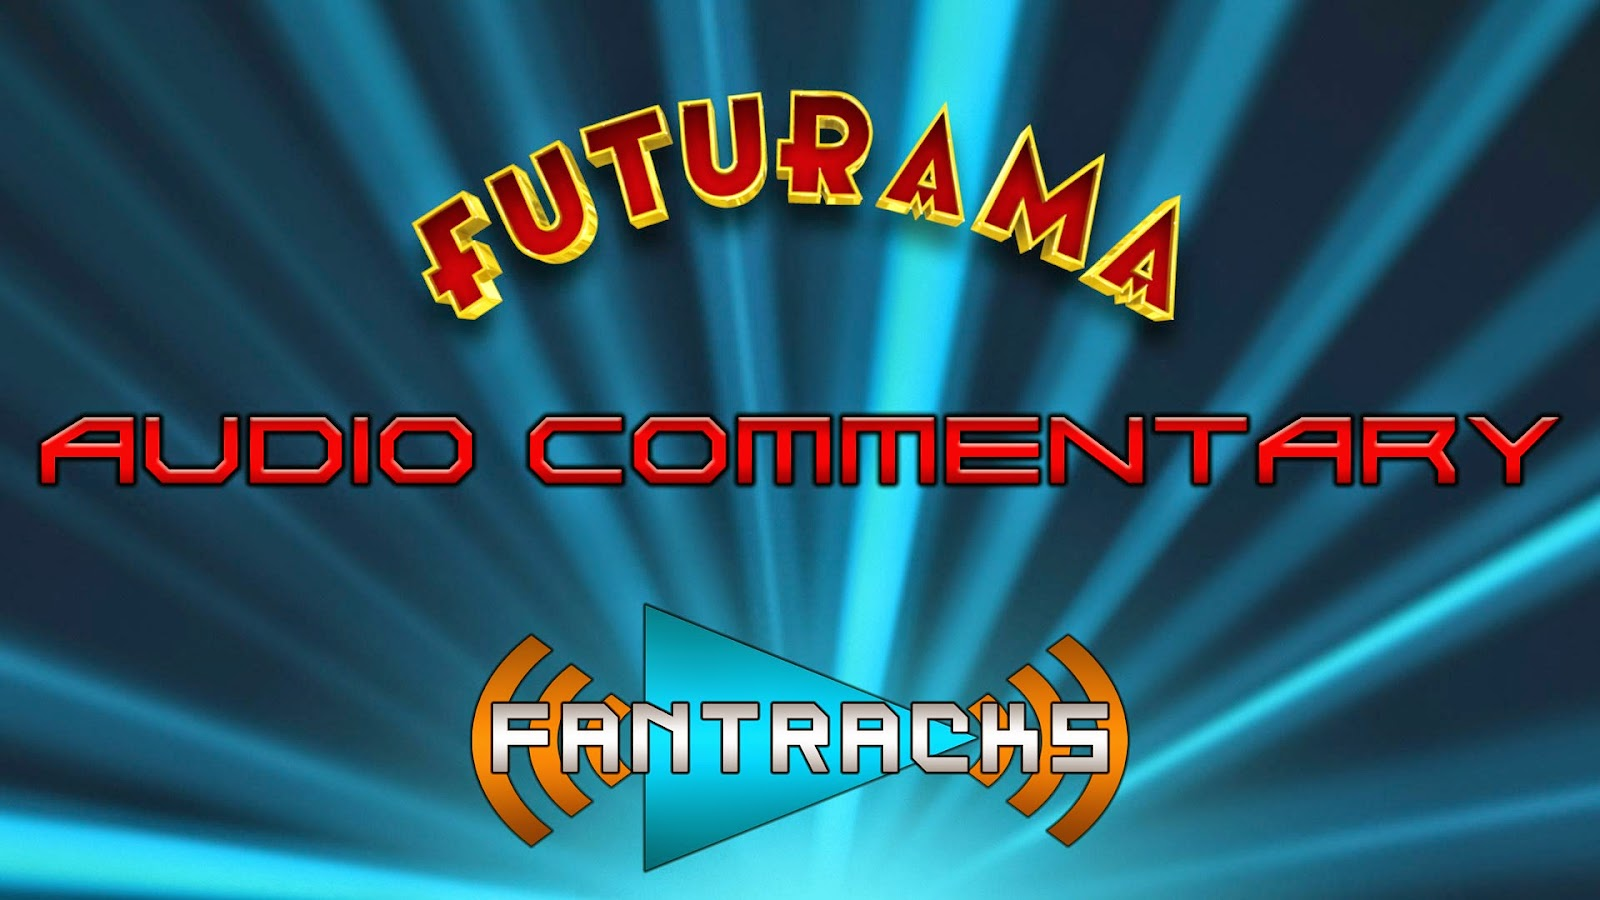 FanTracks Futurama audio commentary